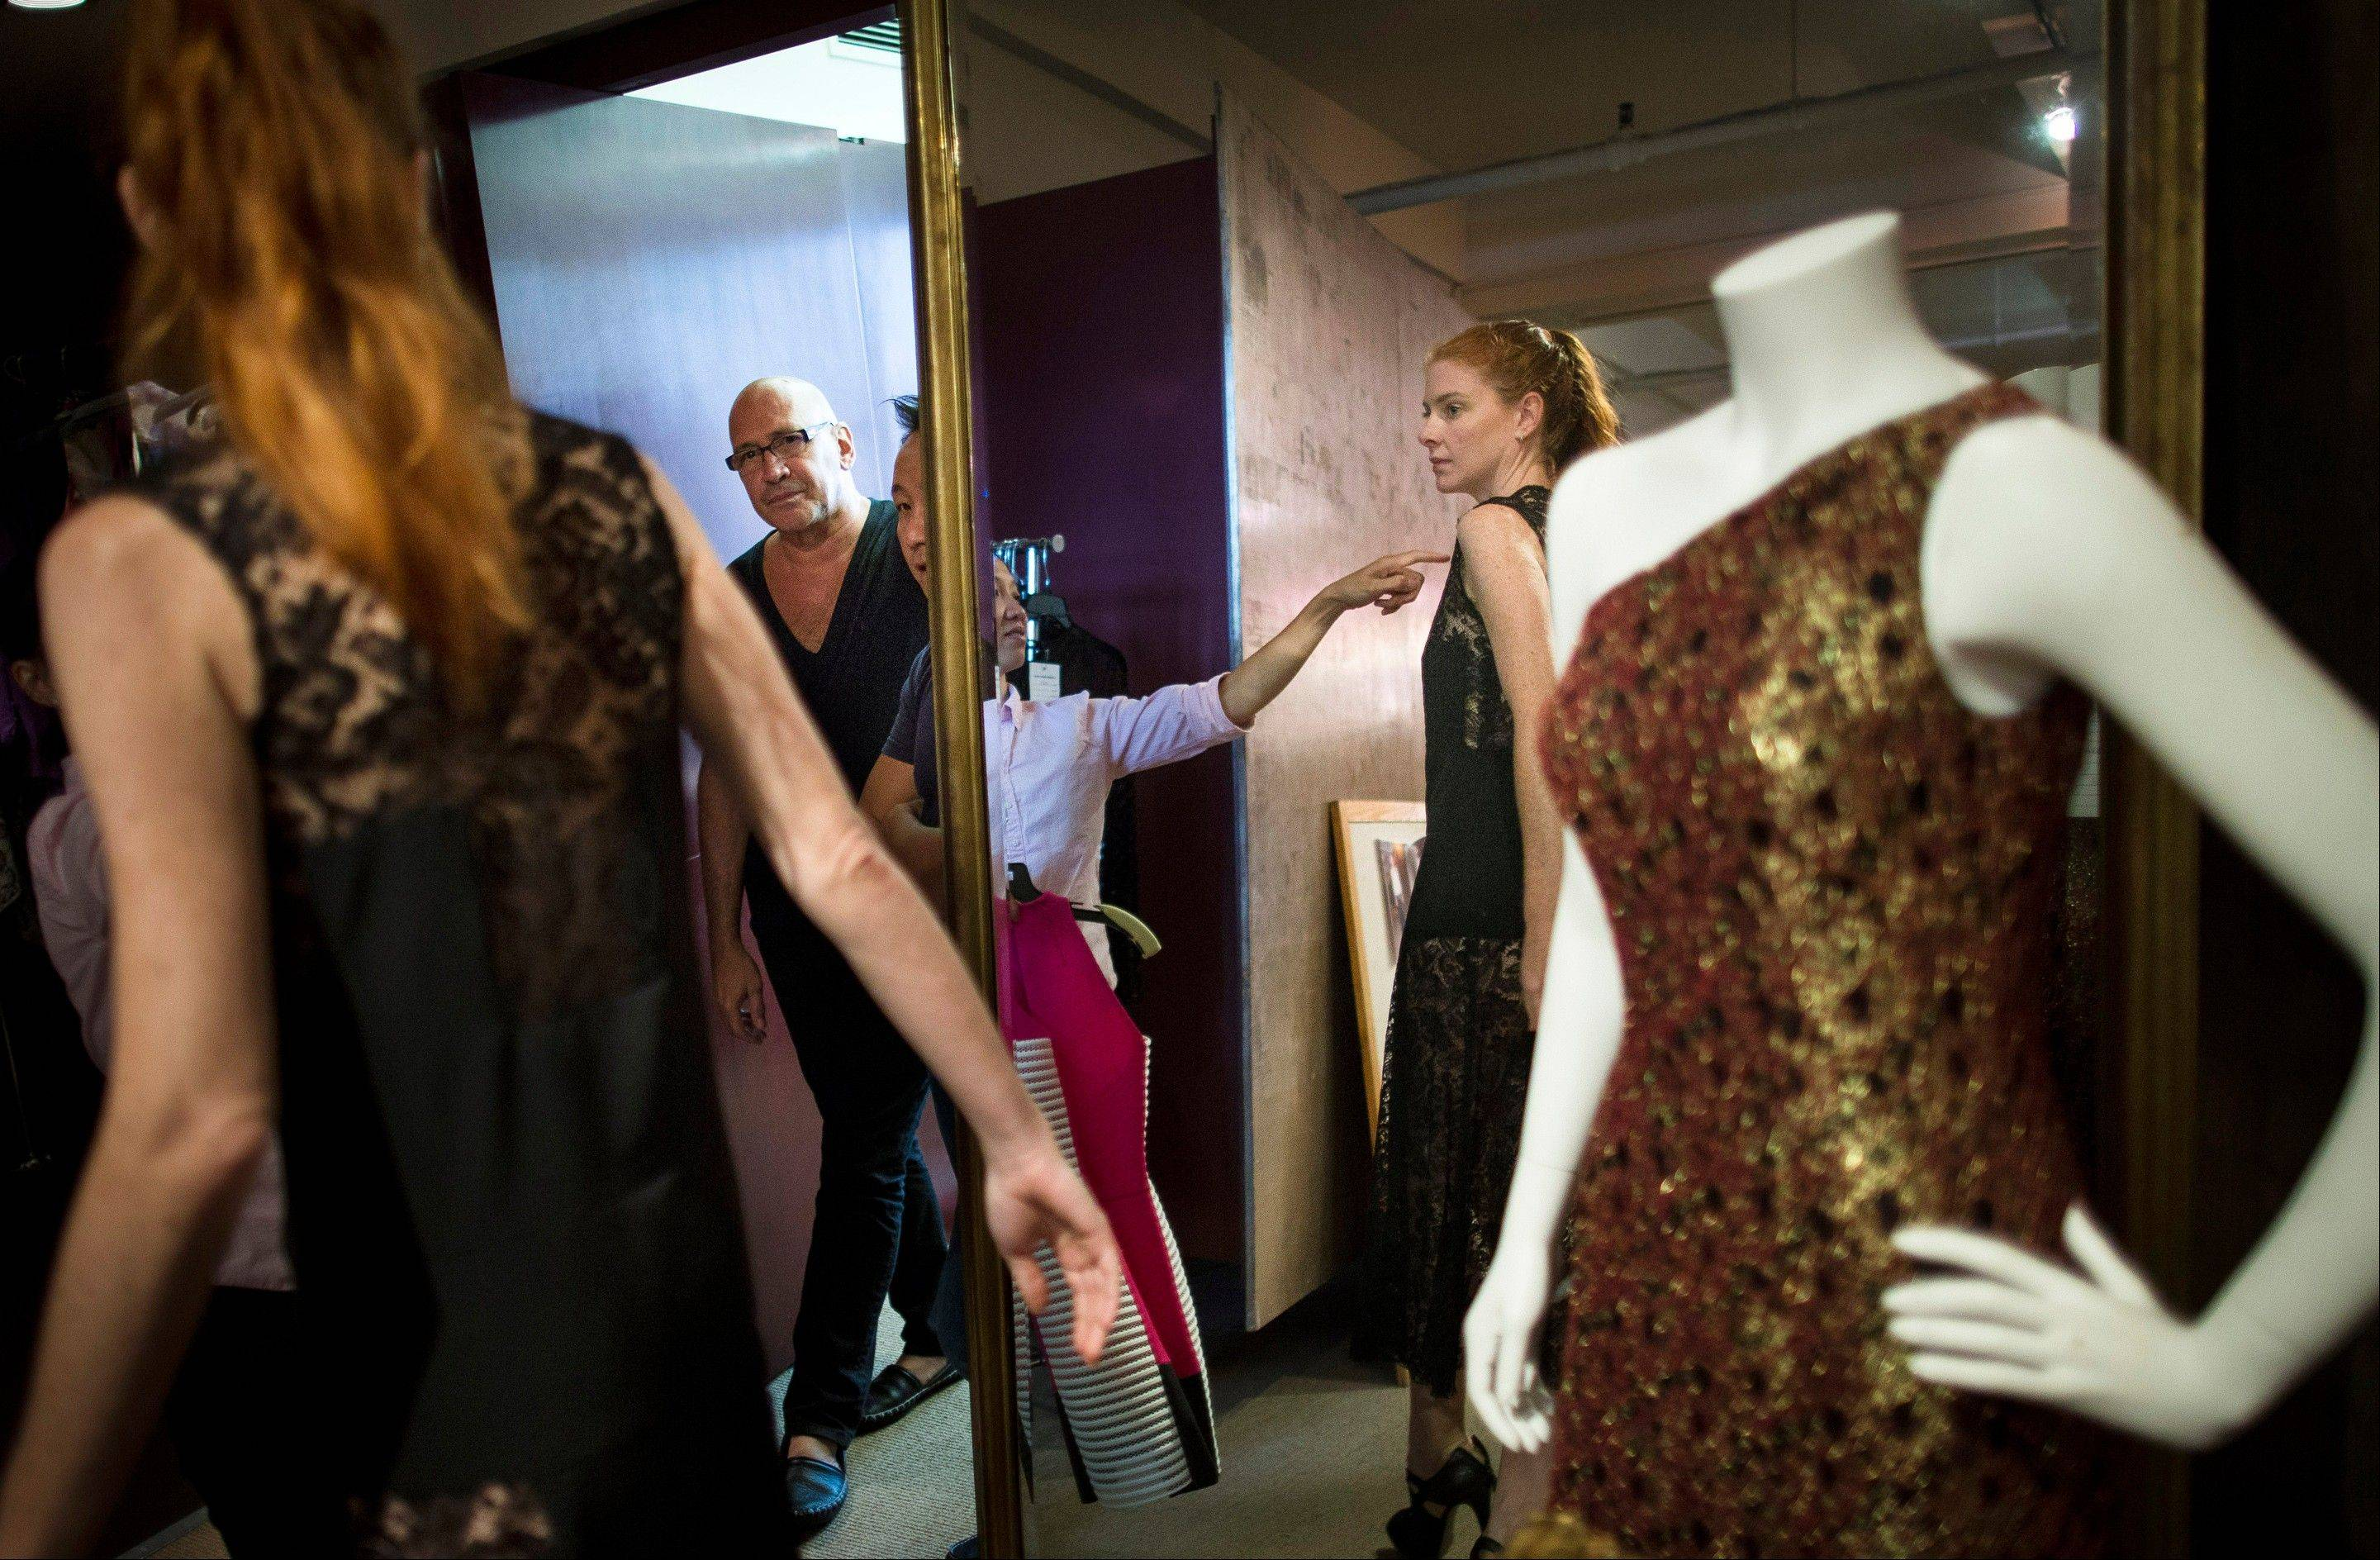 Fashion designer Carmen Marc Valvo, in glasses, watches his muse-model Taylor Foster be fitted for a dress at Valvo's New York studio.